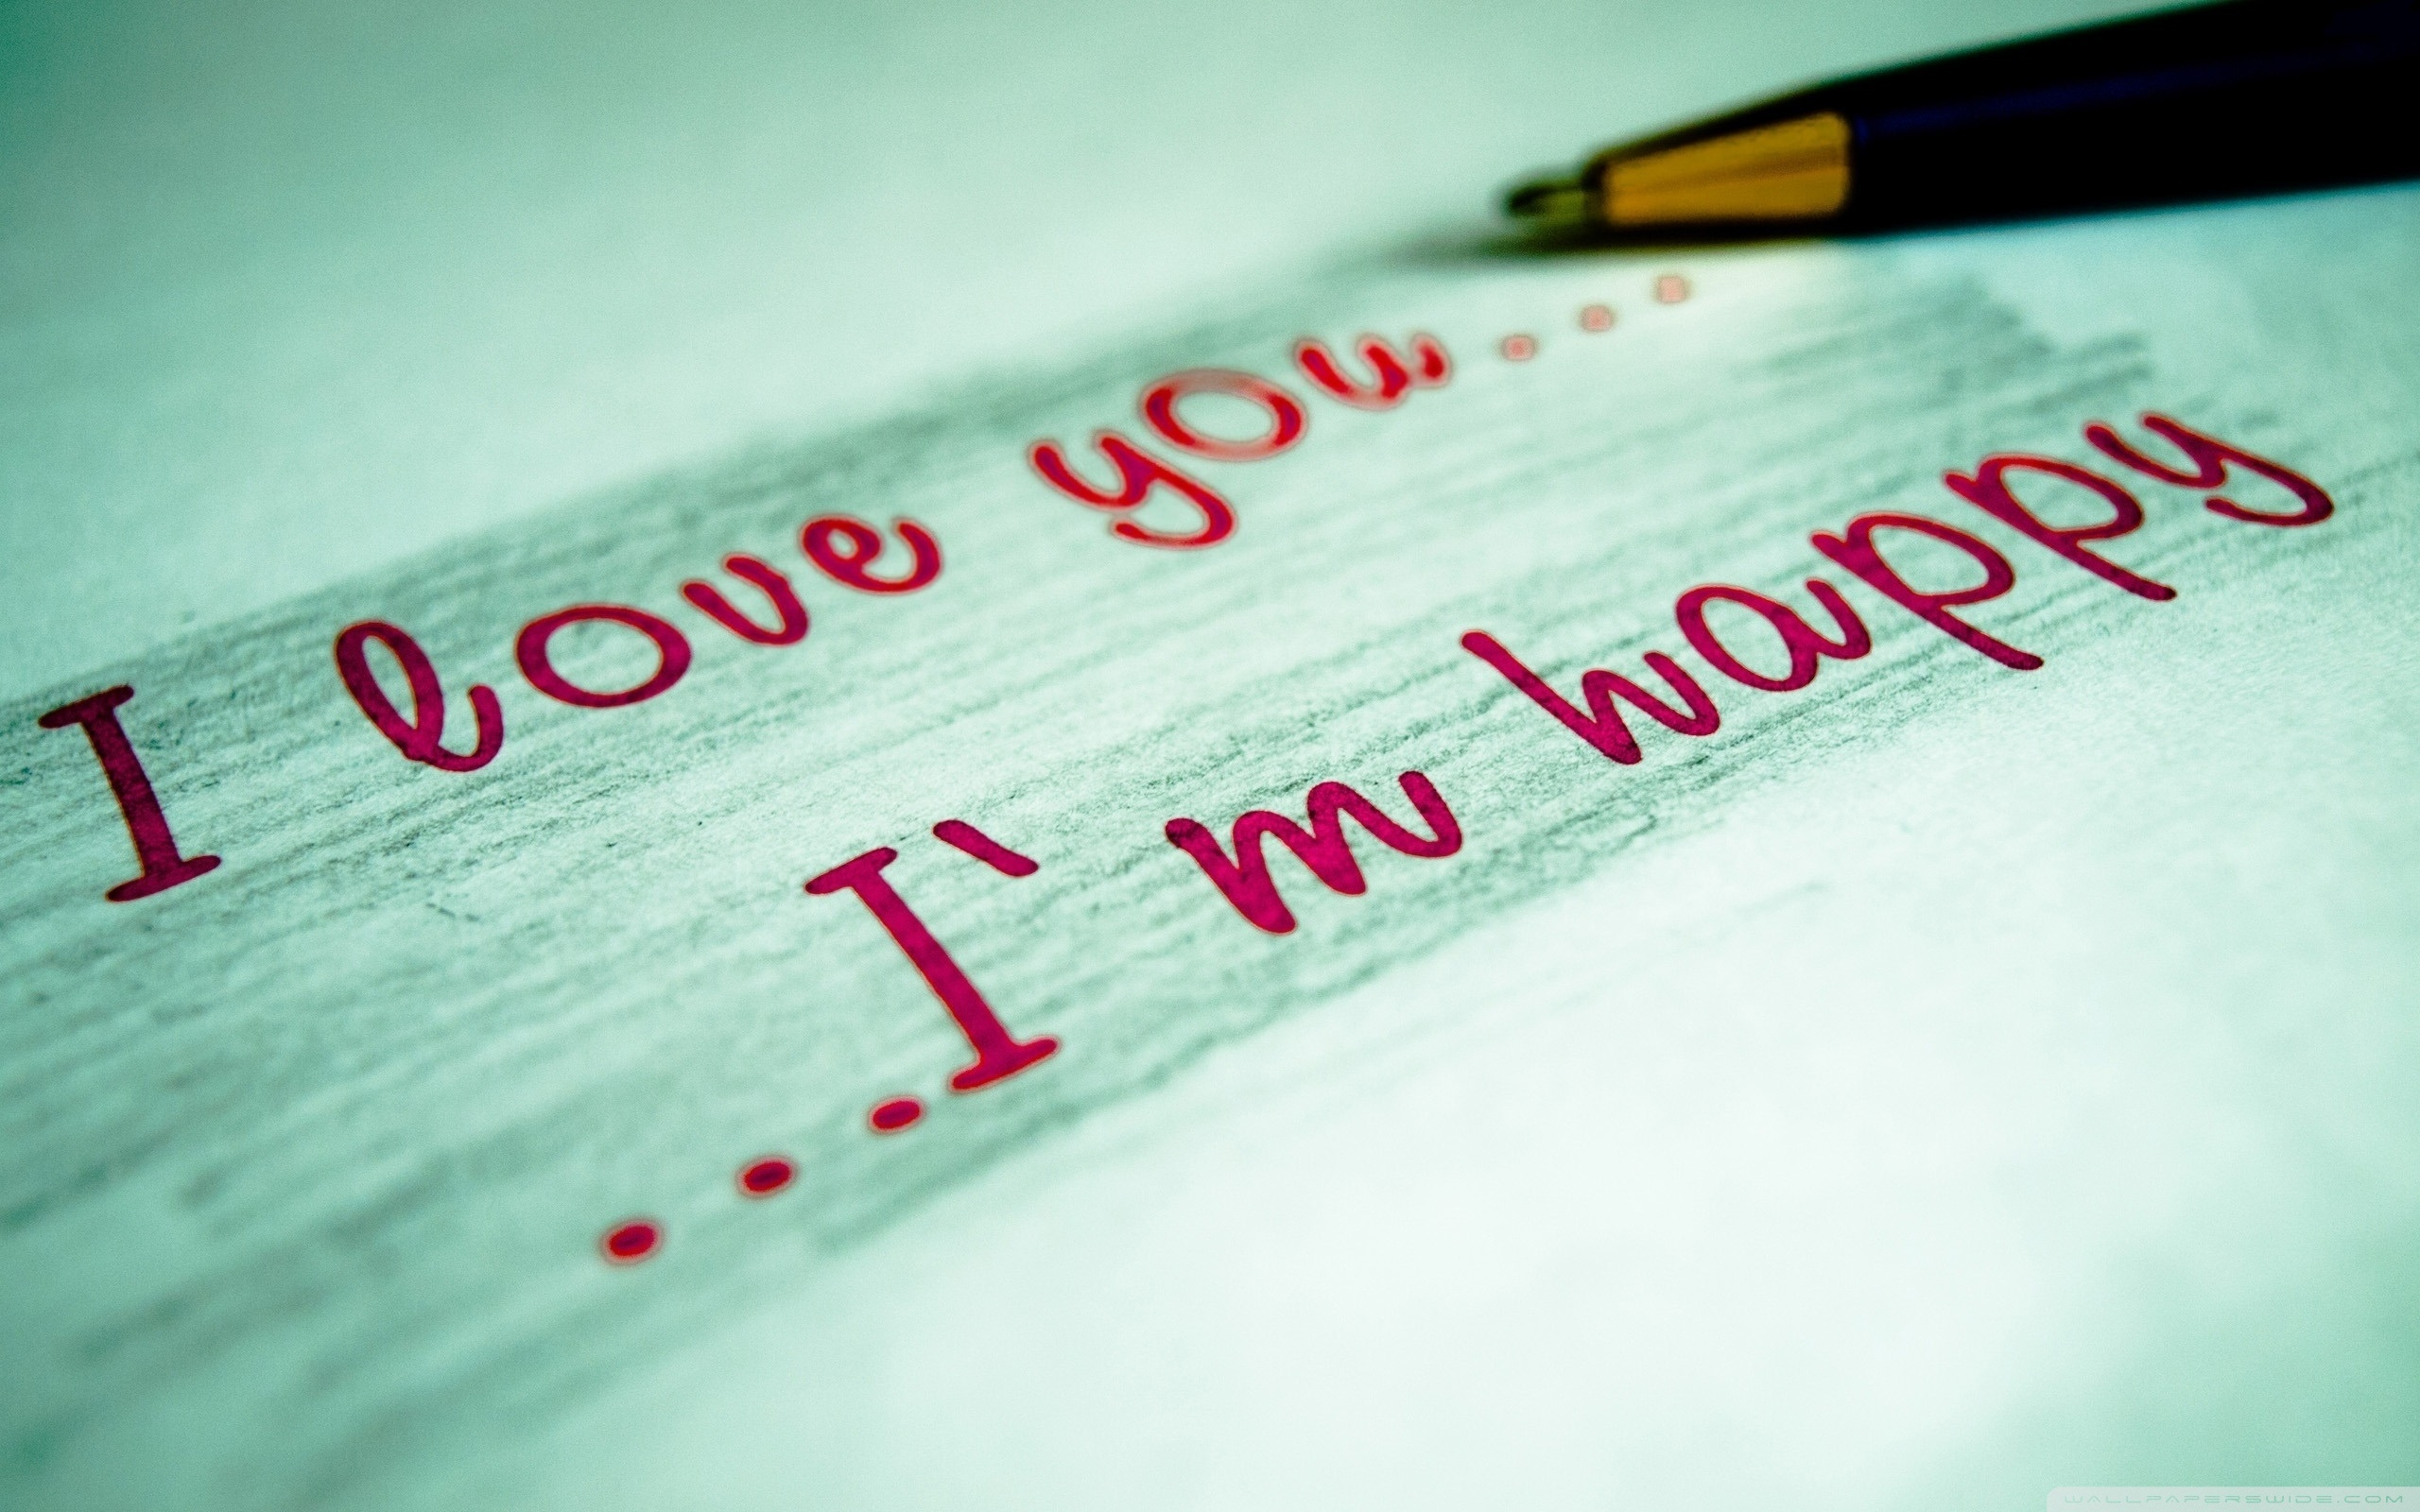 I Love You Full HD Wallpaper